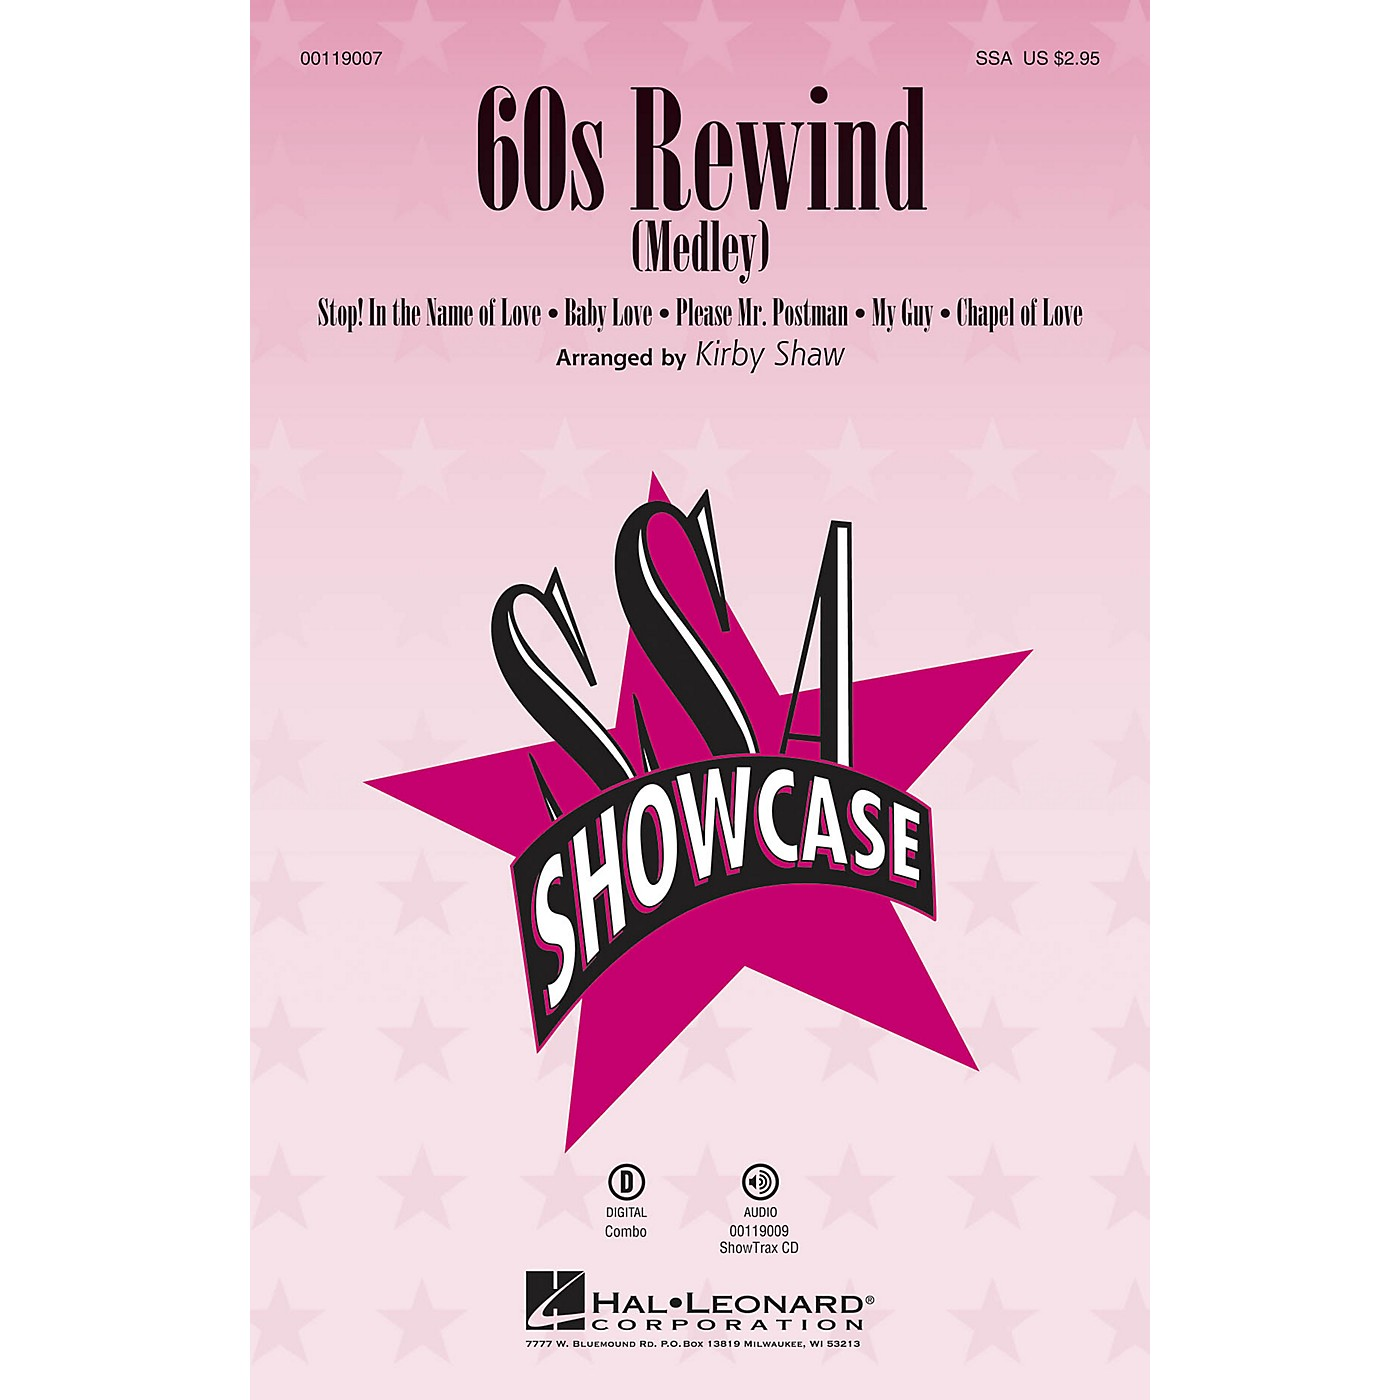 Hal Leonard 60s Rewind (Medley) (ShowTrax CD) ShowTrax CD Arranged by Kirby Shaw thumbnail